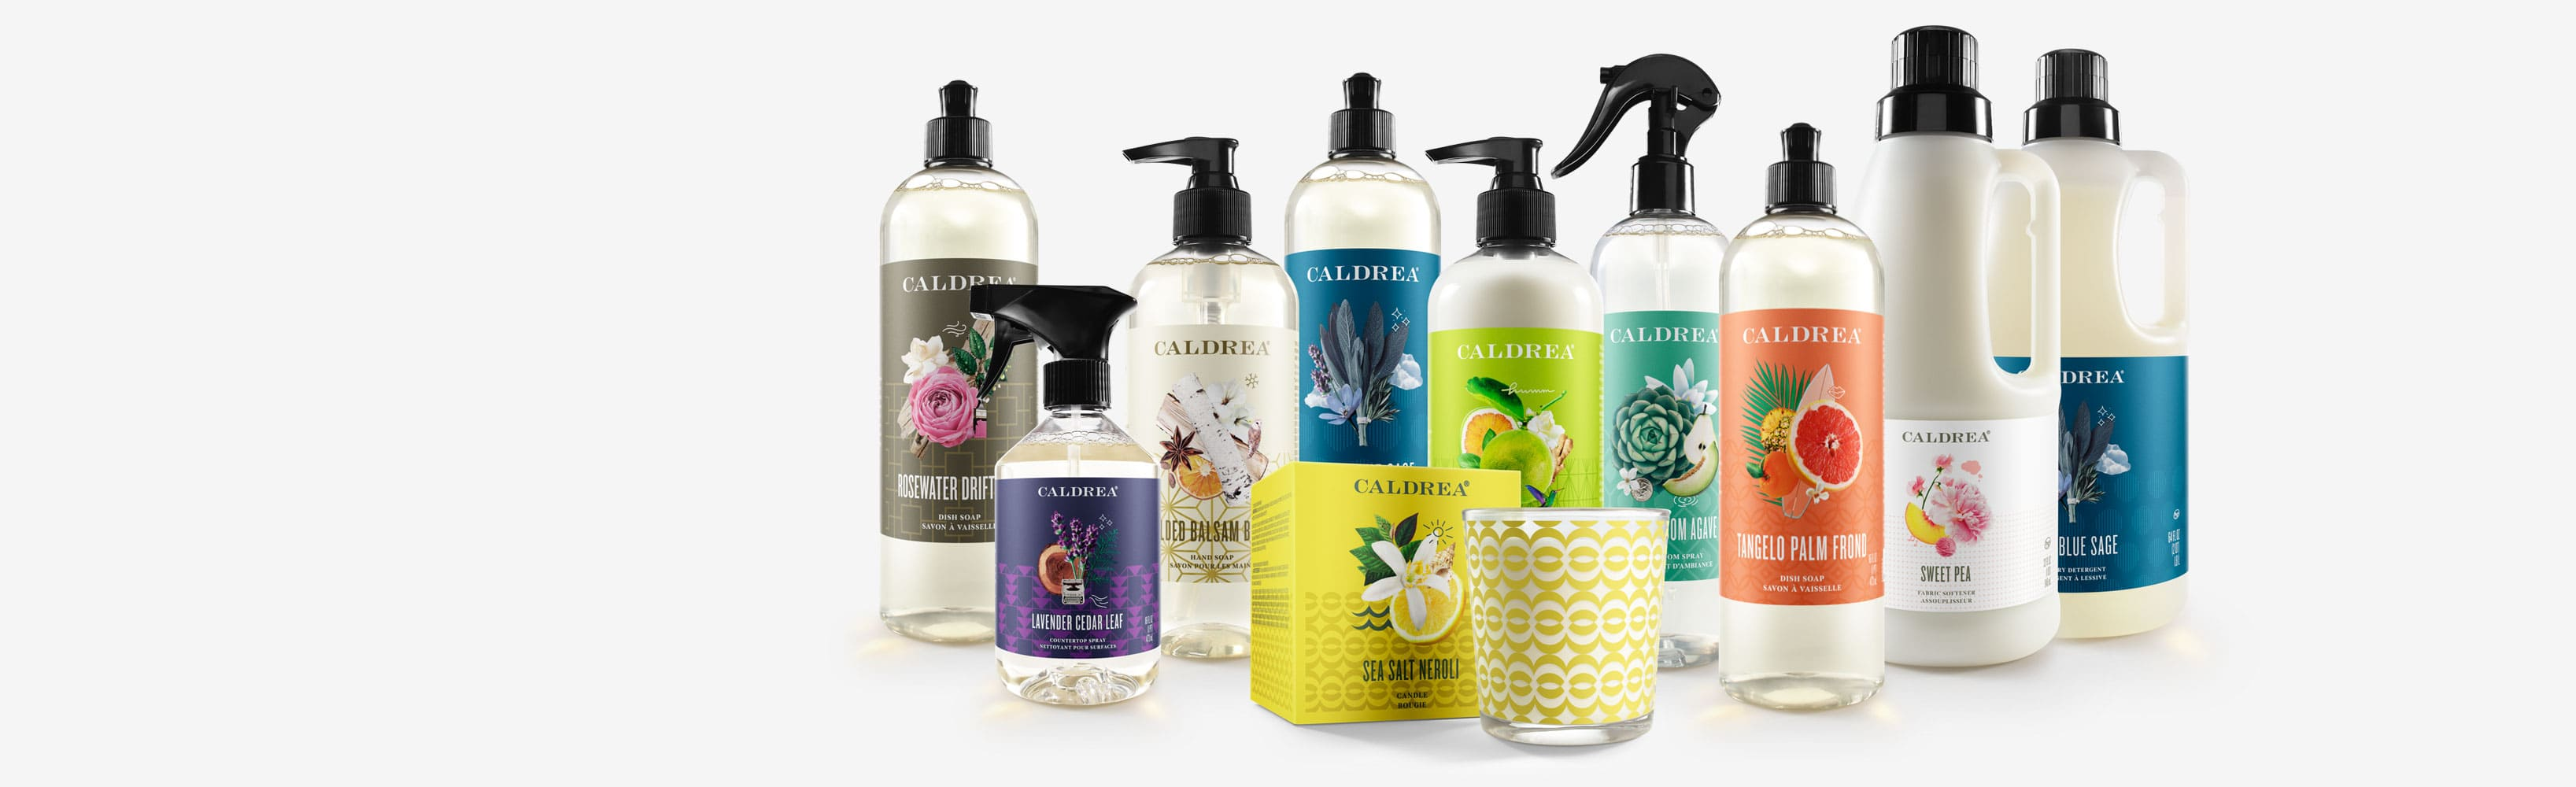 Our dish soaps come in scents such as: Lavender Cedar Leaf, Tangelo Palm Frond, and more.